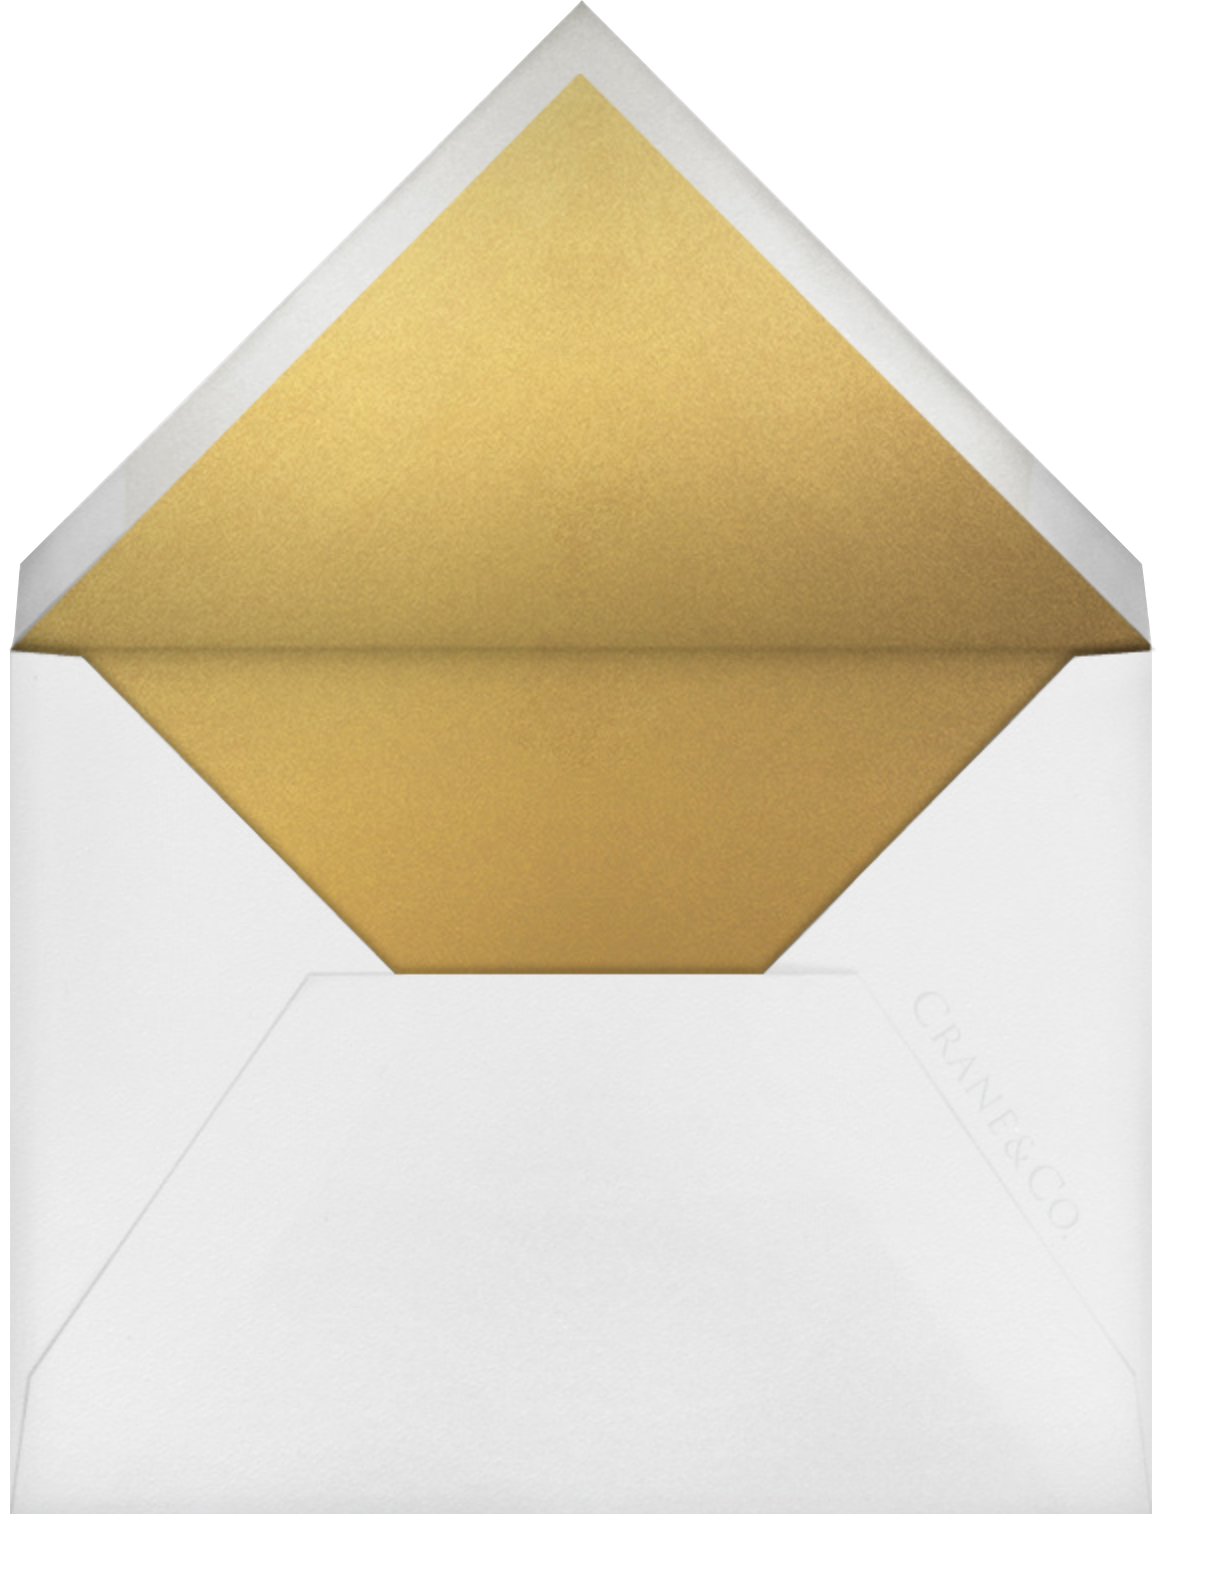 Jubilee I - Medium Gold - Kelly Wearstler - Engagement party - envelope back